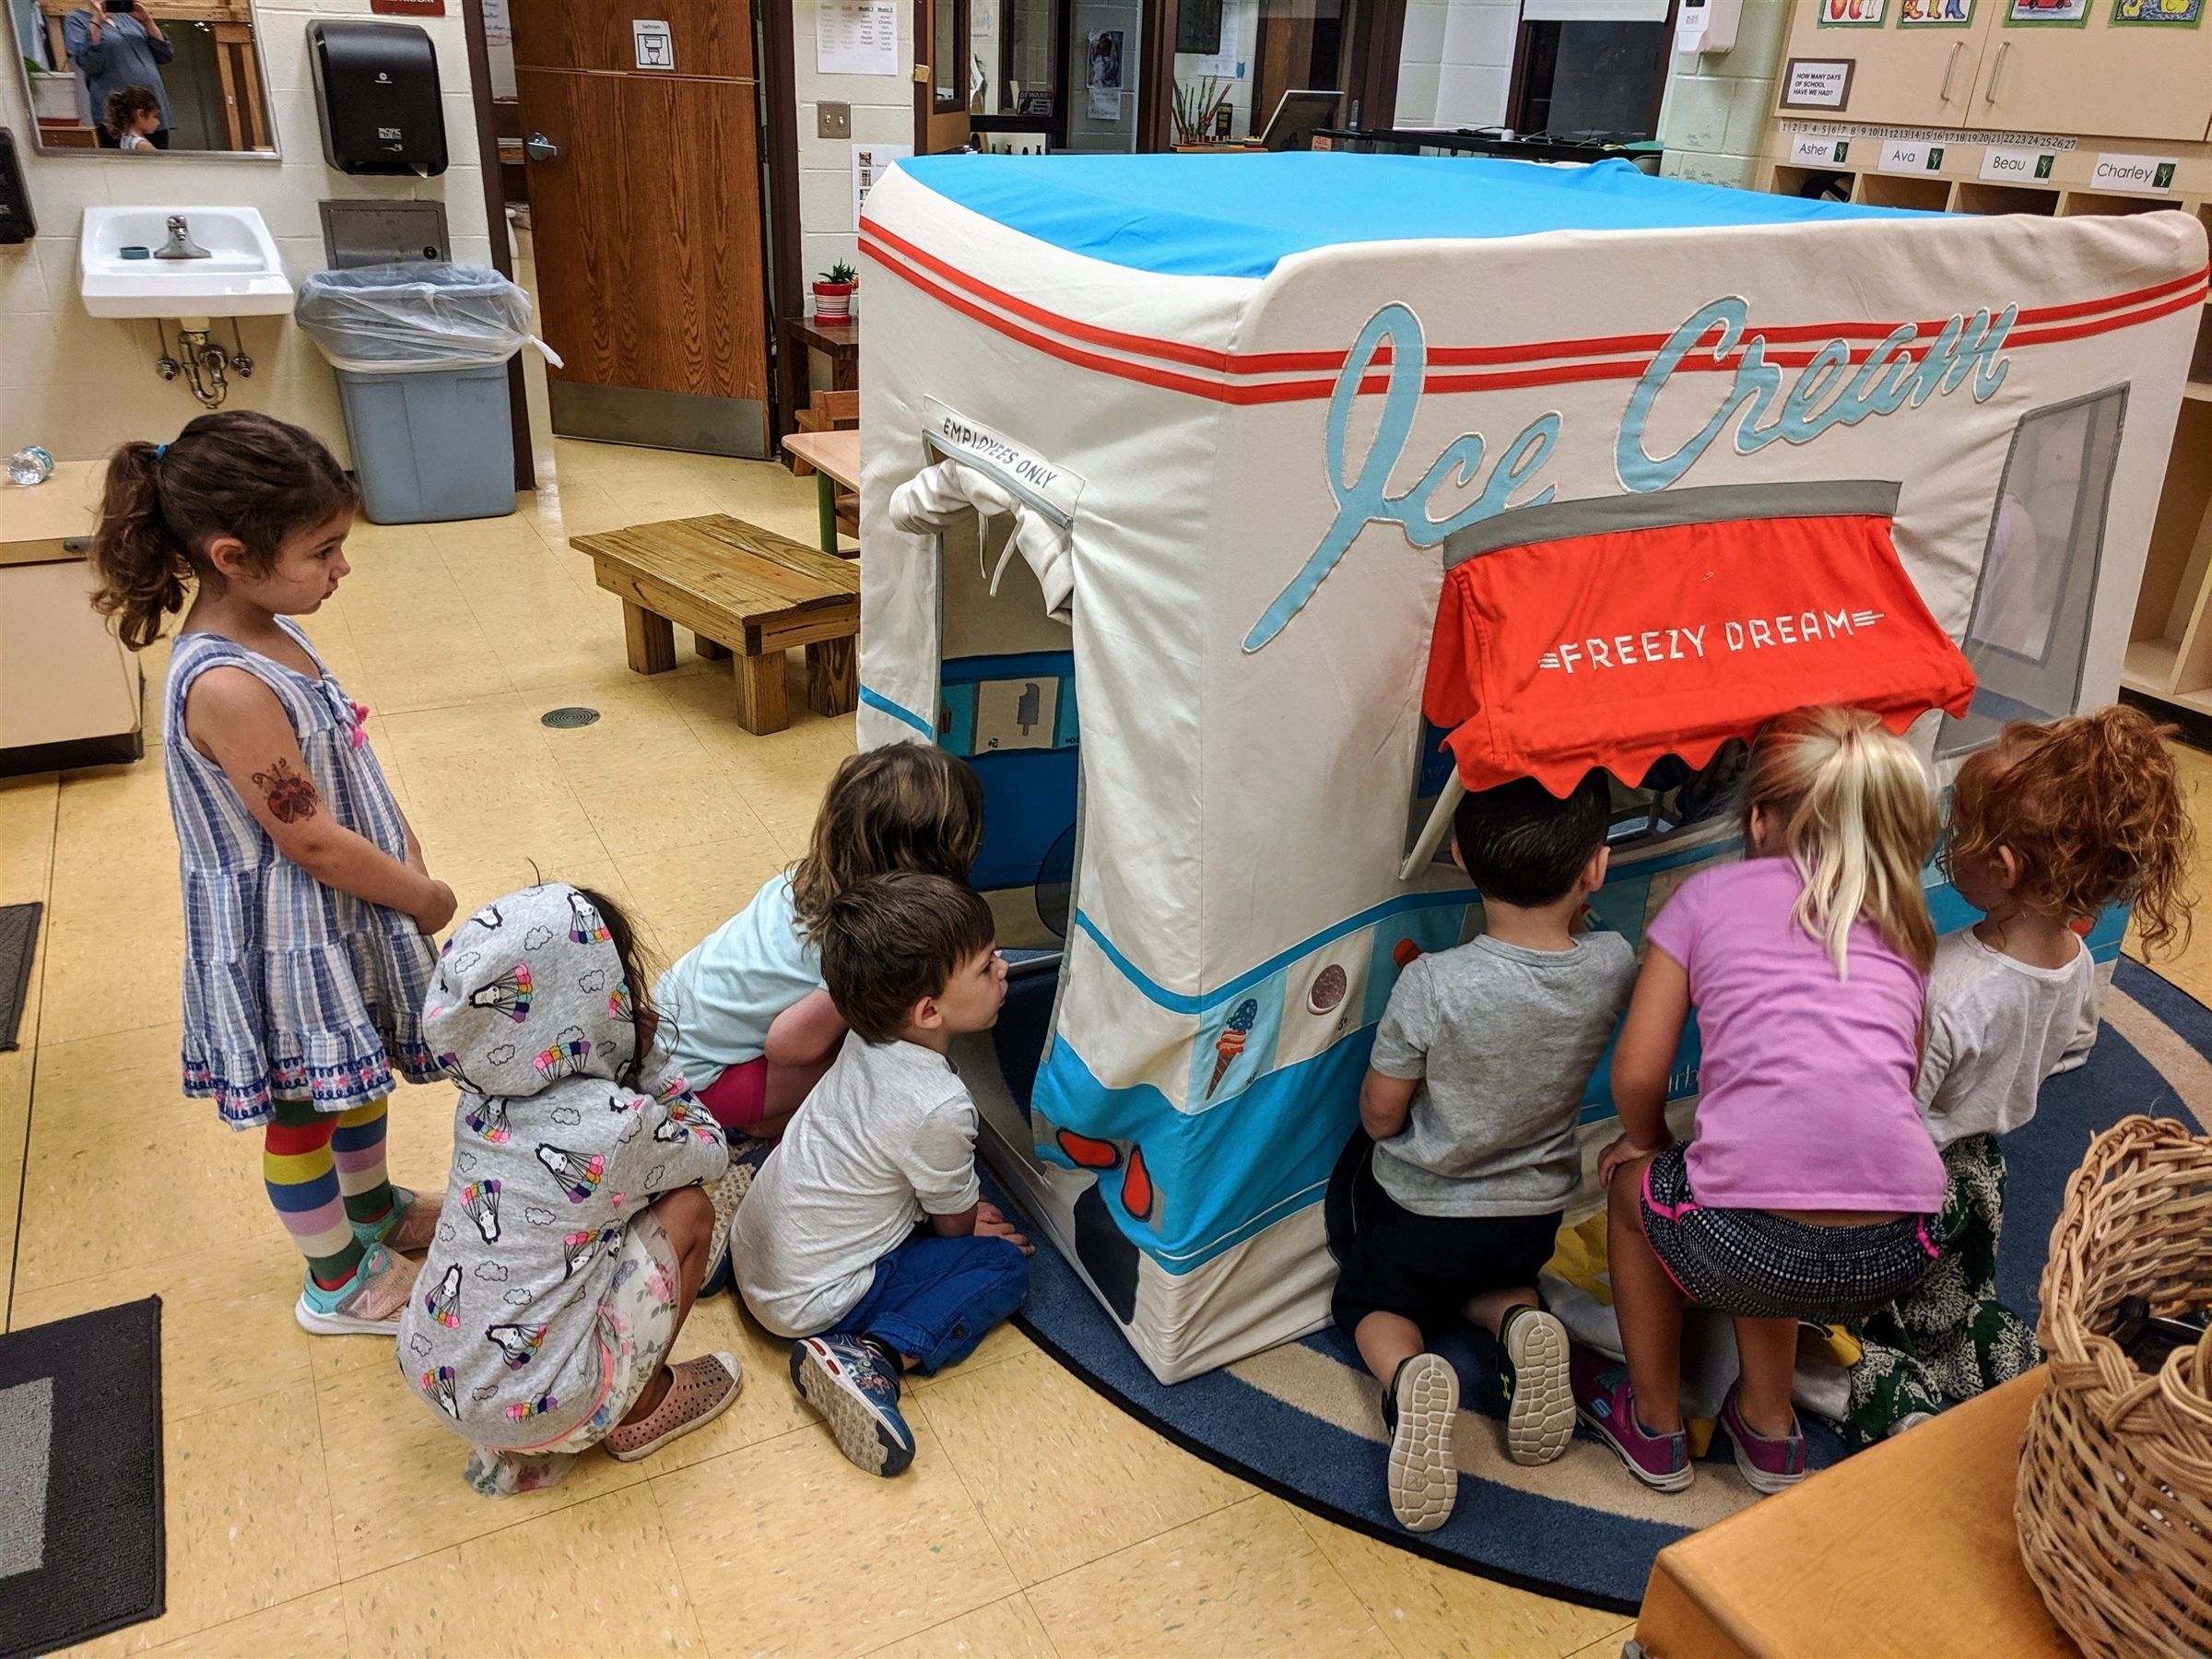 Students were using a wood-framed house like an ice cream shop during outdoor recess. This was a fun addition to add to the mix!